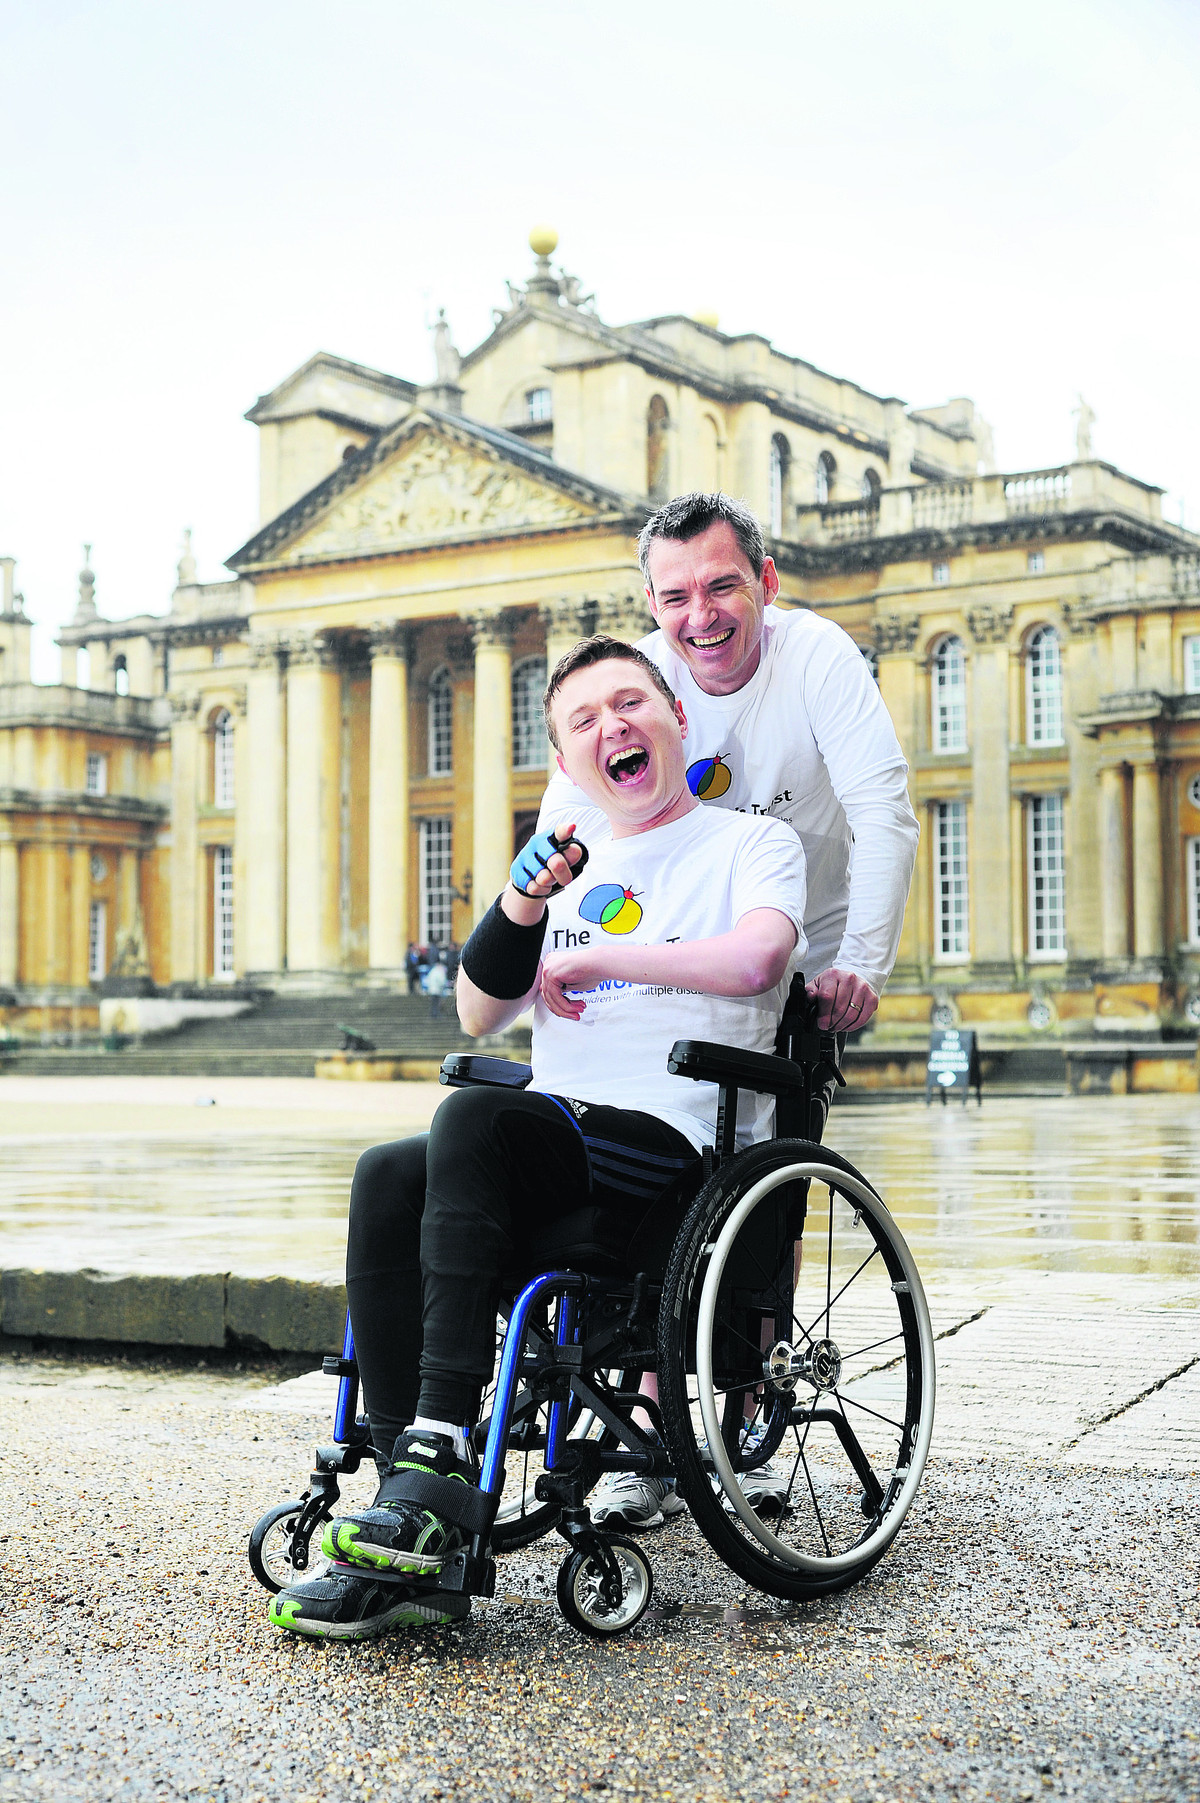 Edward McDonagh is the first wheelchair entrant in the Blenheim 7k race. He will be accompanied by his trainer Johnathan Watson